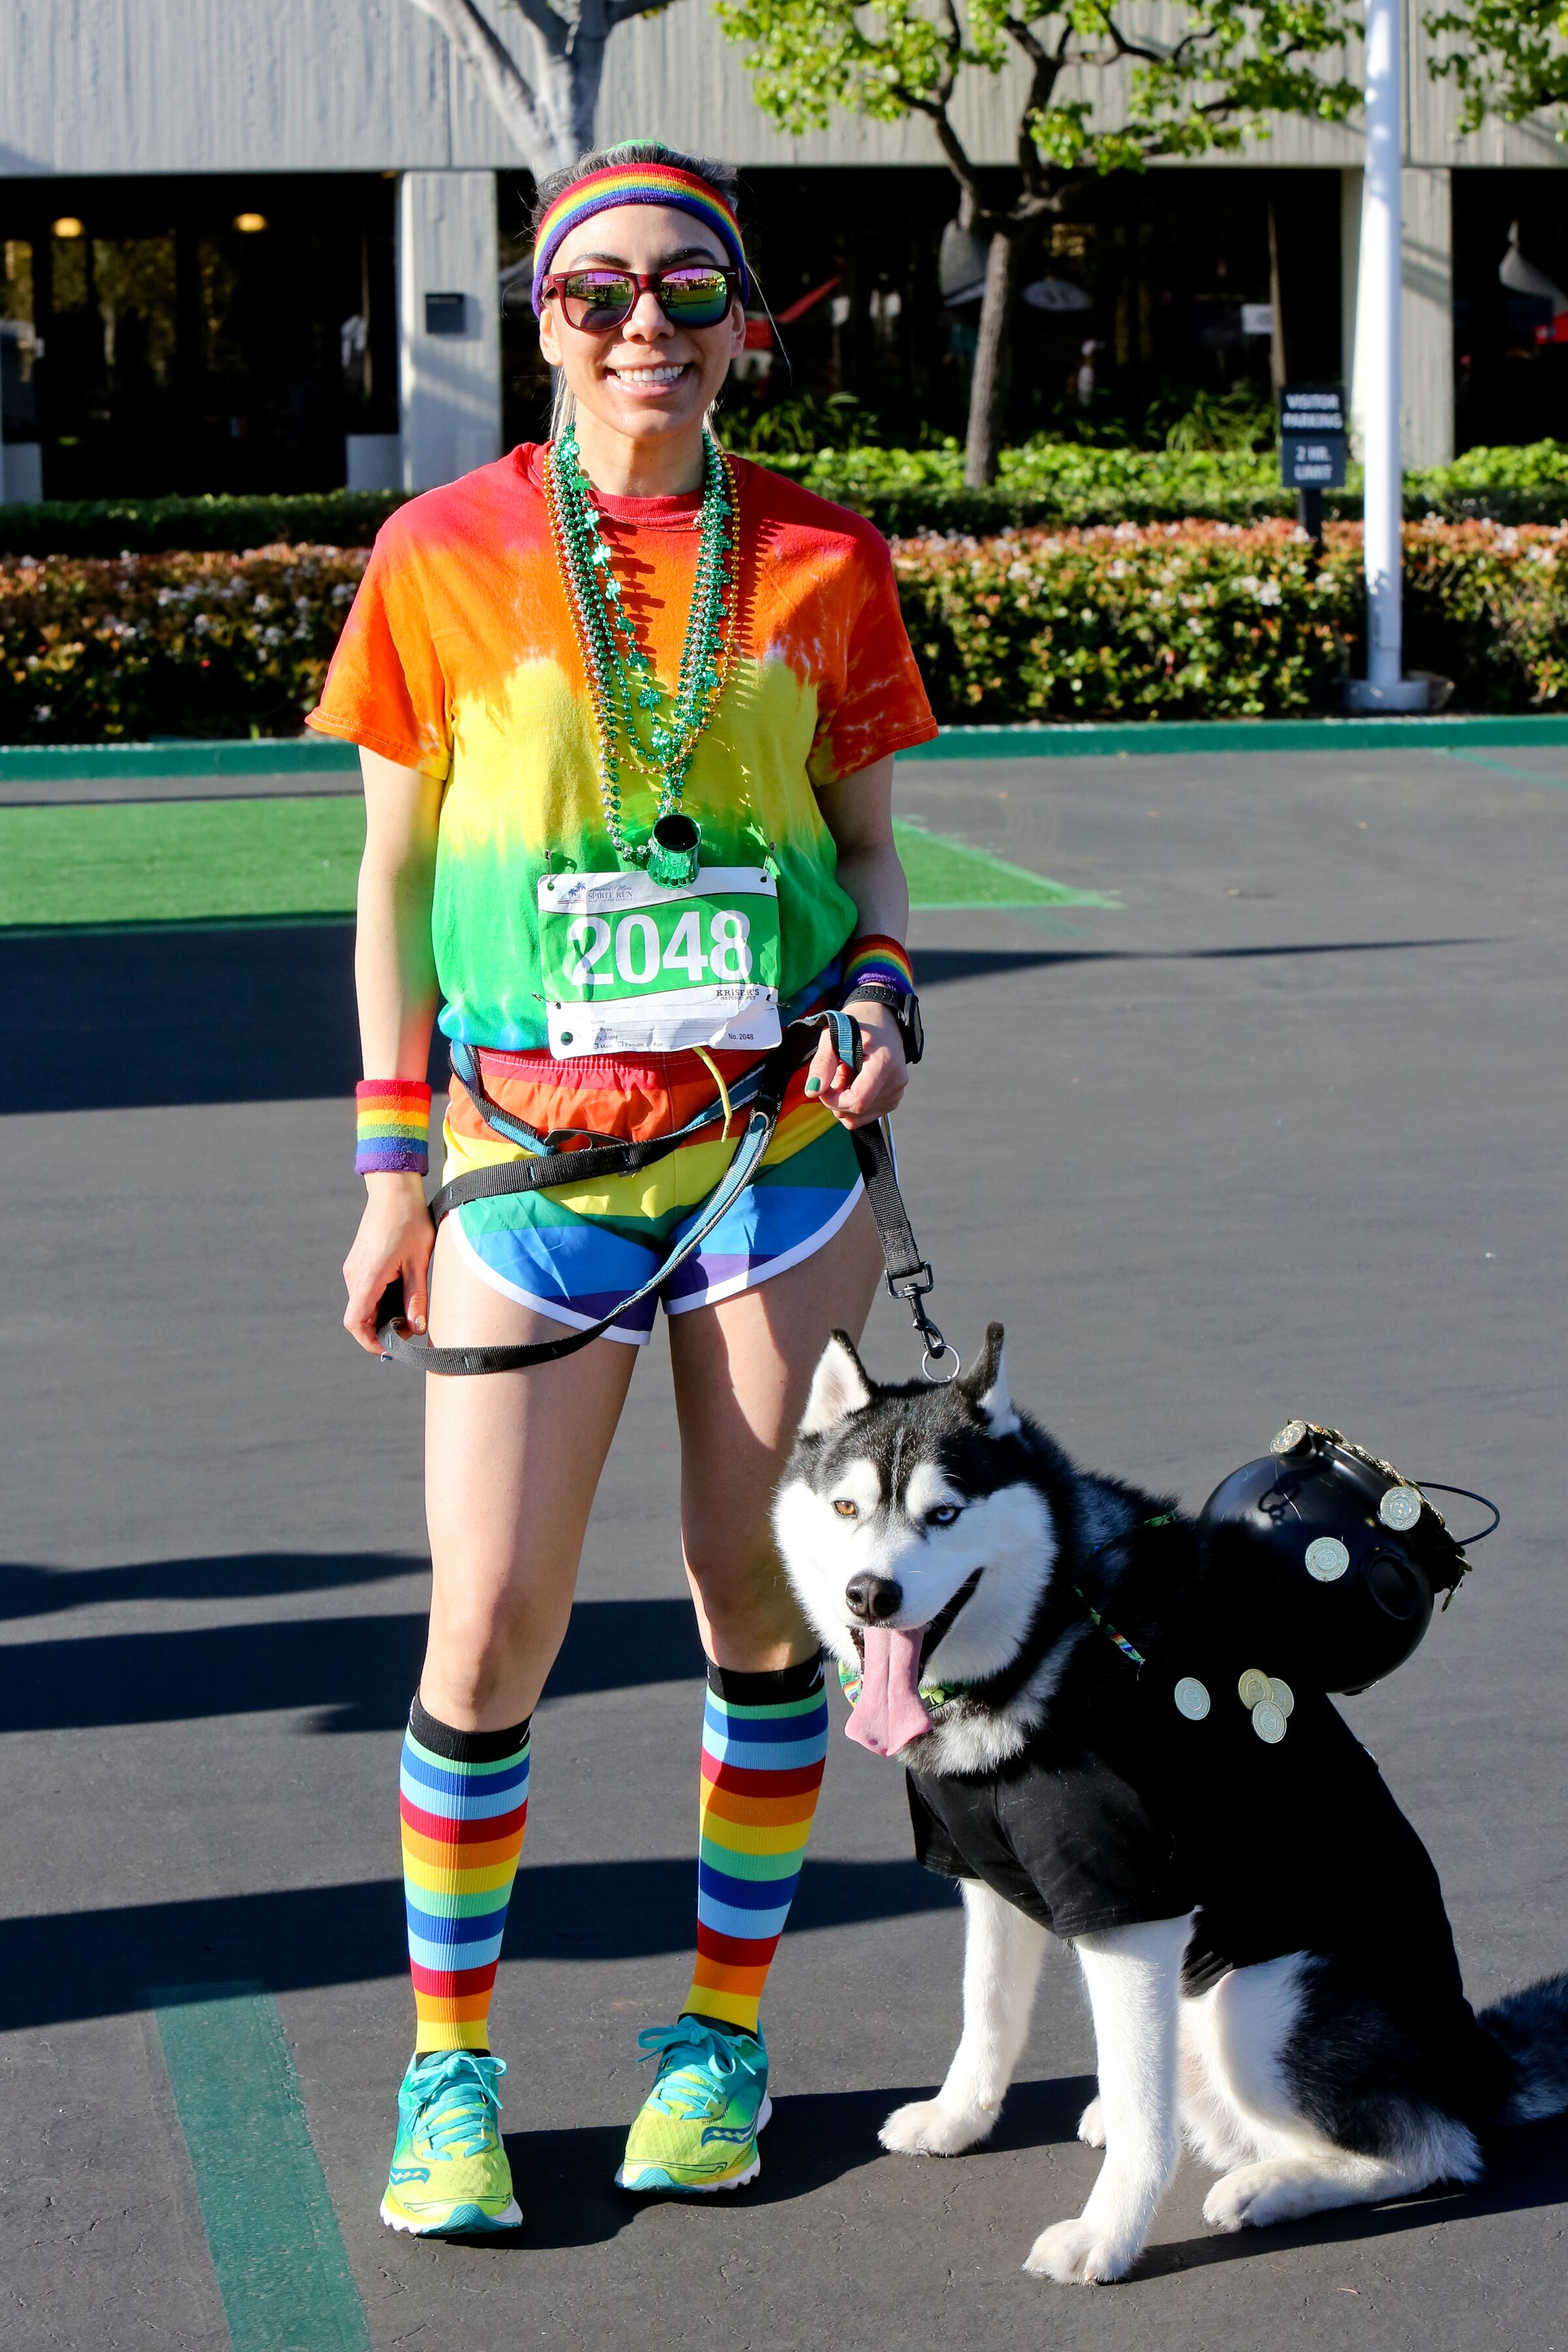 rainbow runner w dog in costume 2.jpeg